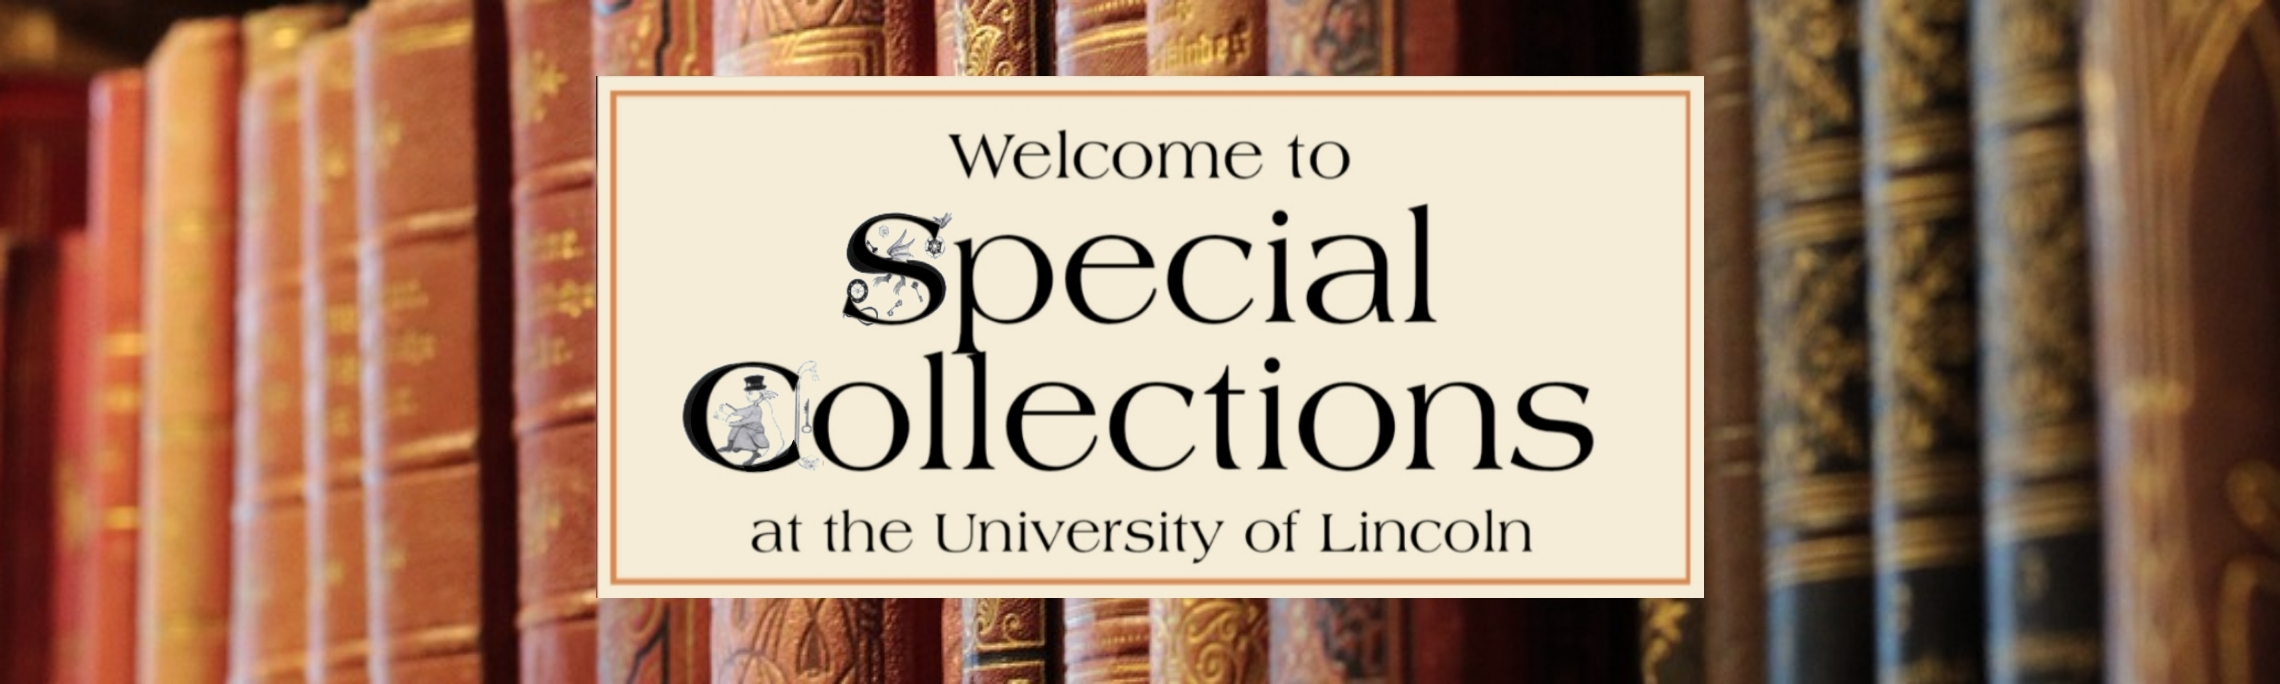 Welcome to Special Collections at the University of Lincoln banner